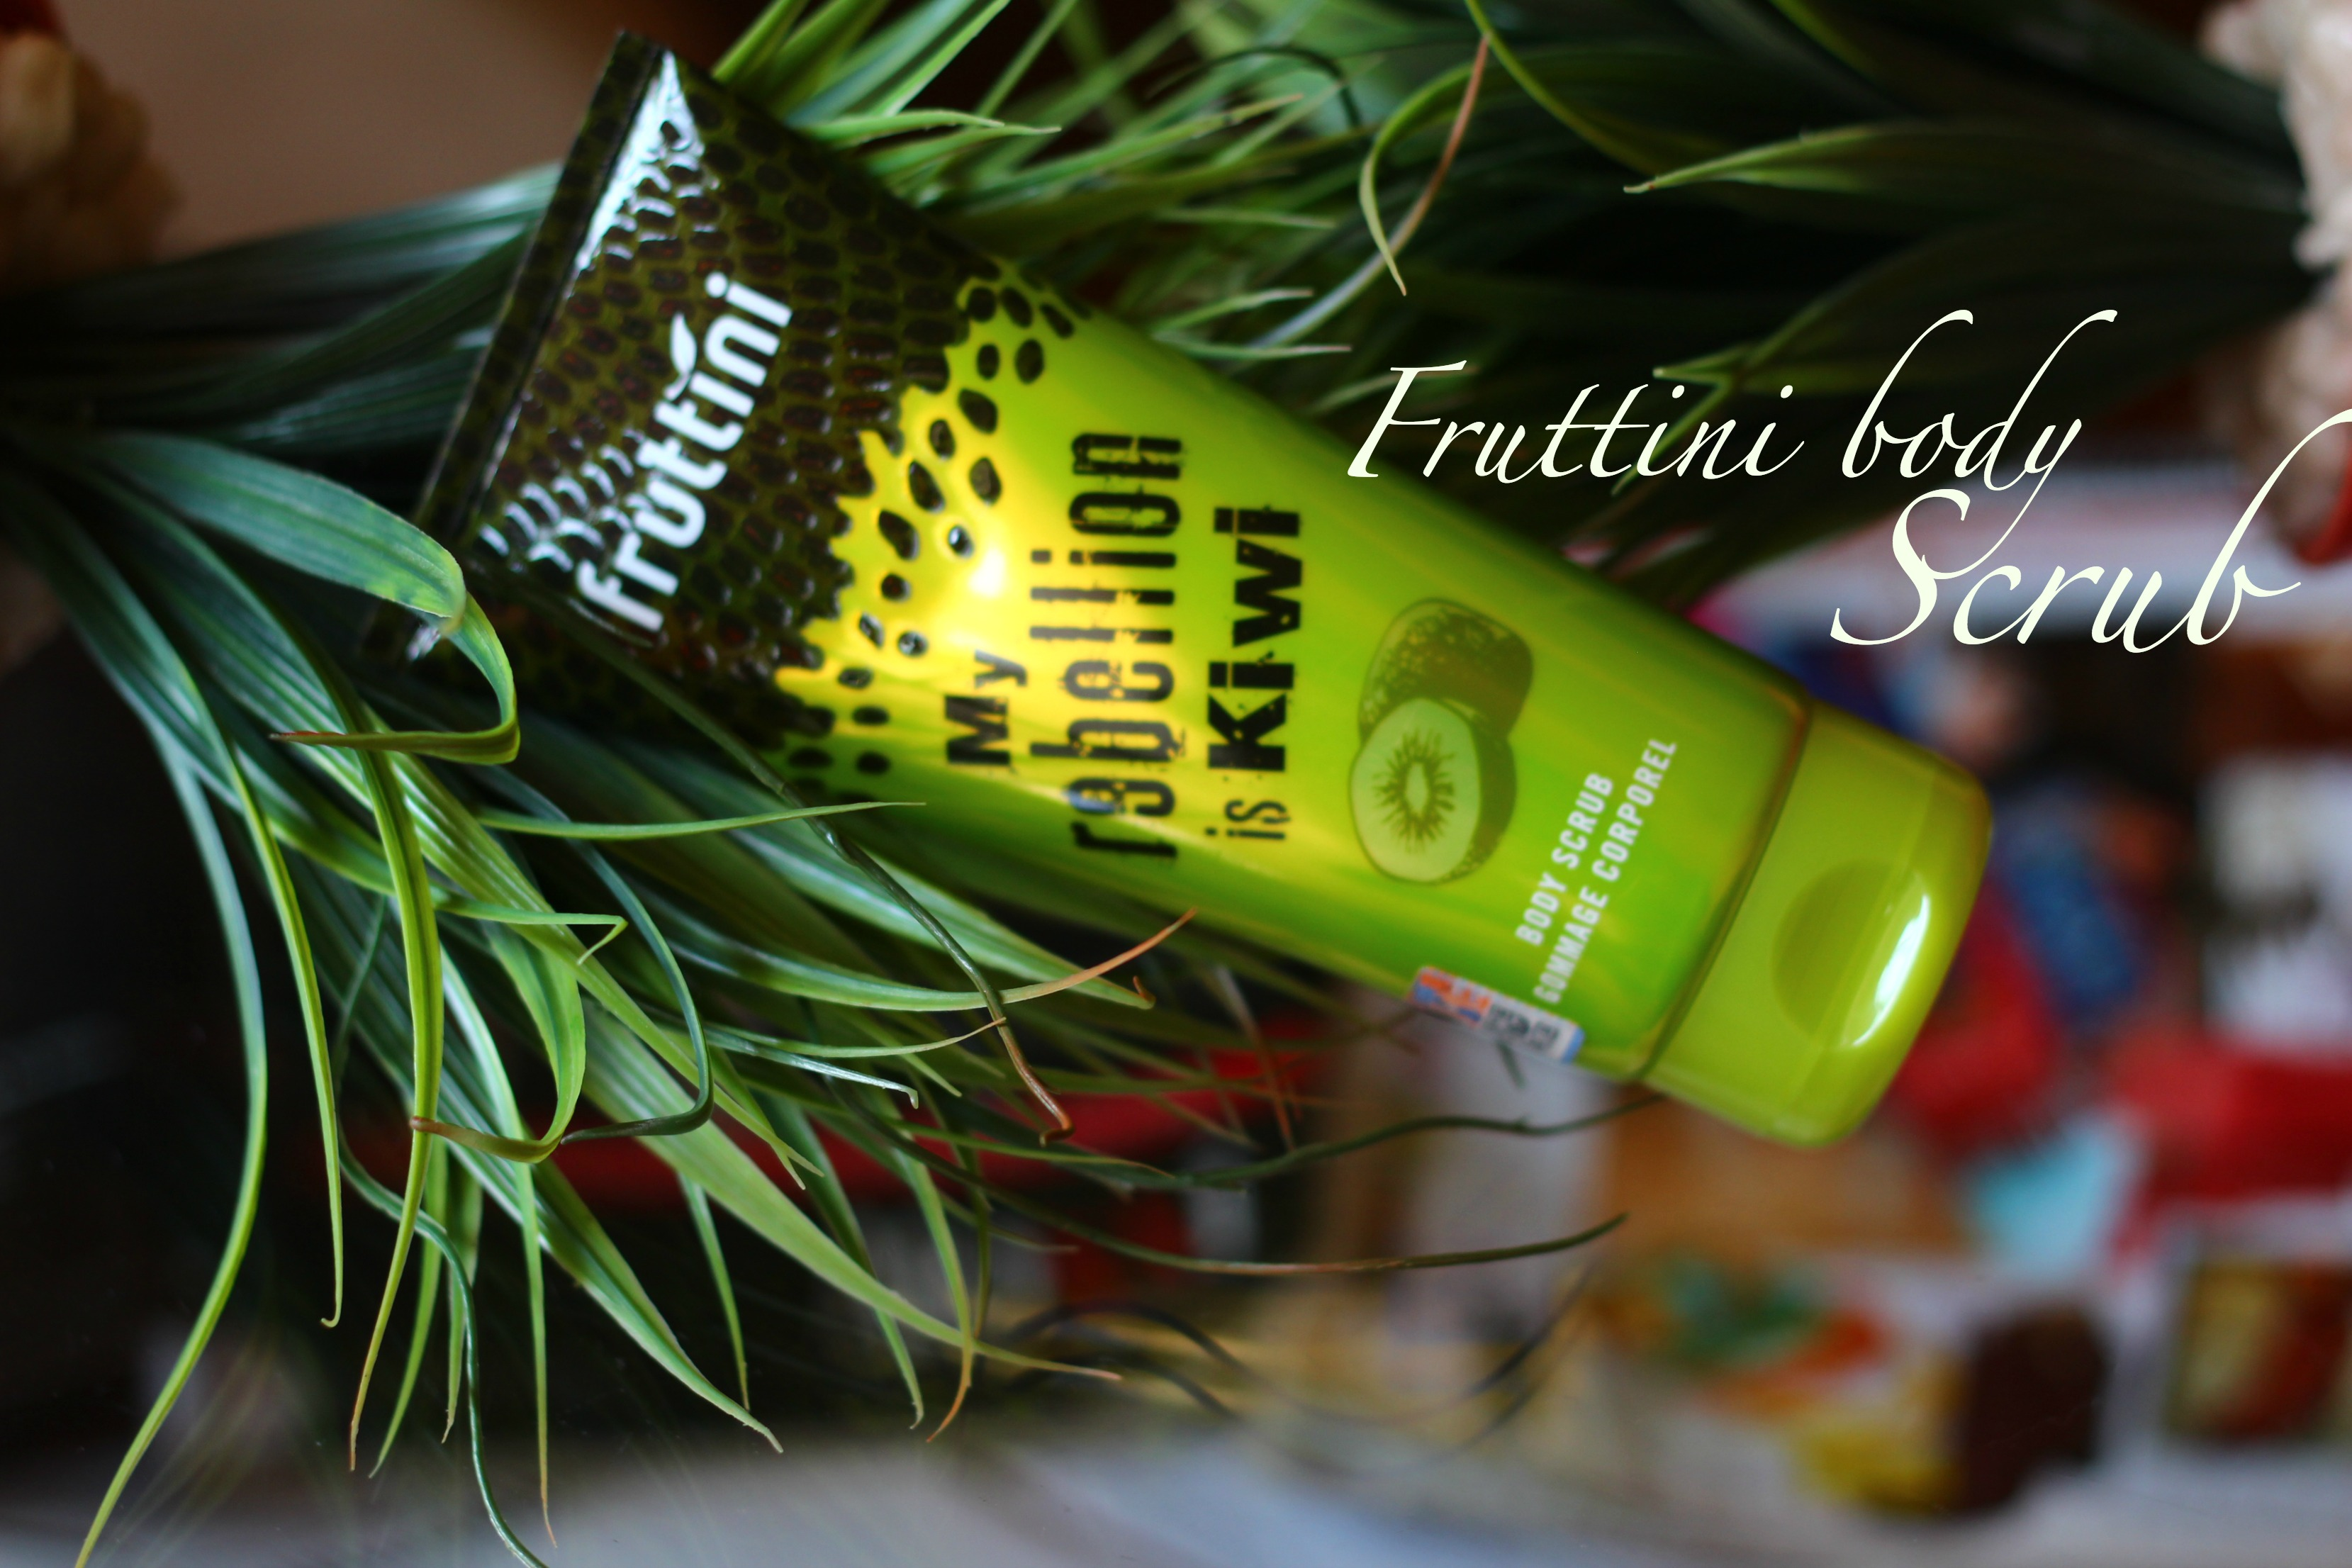 fruttini body scrub